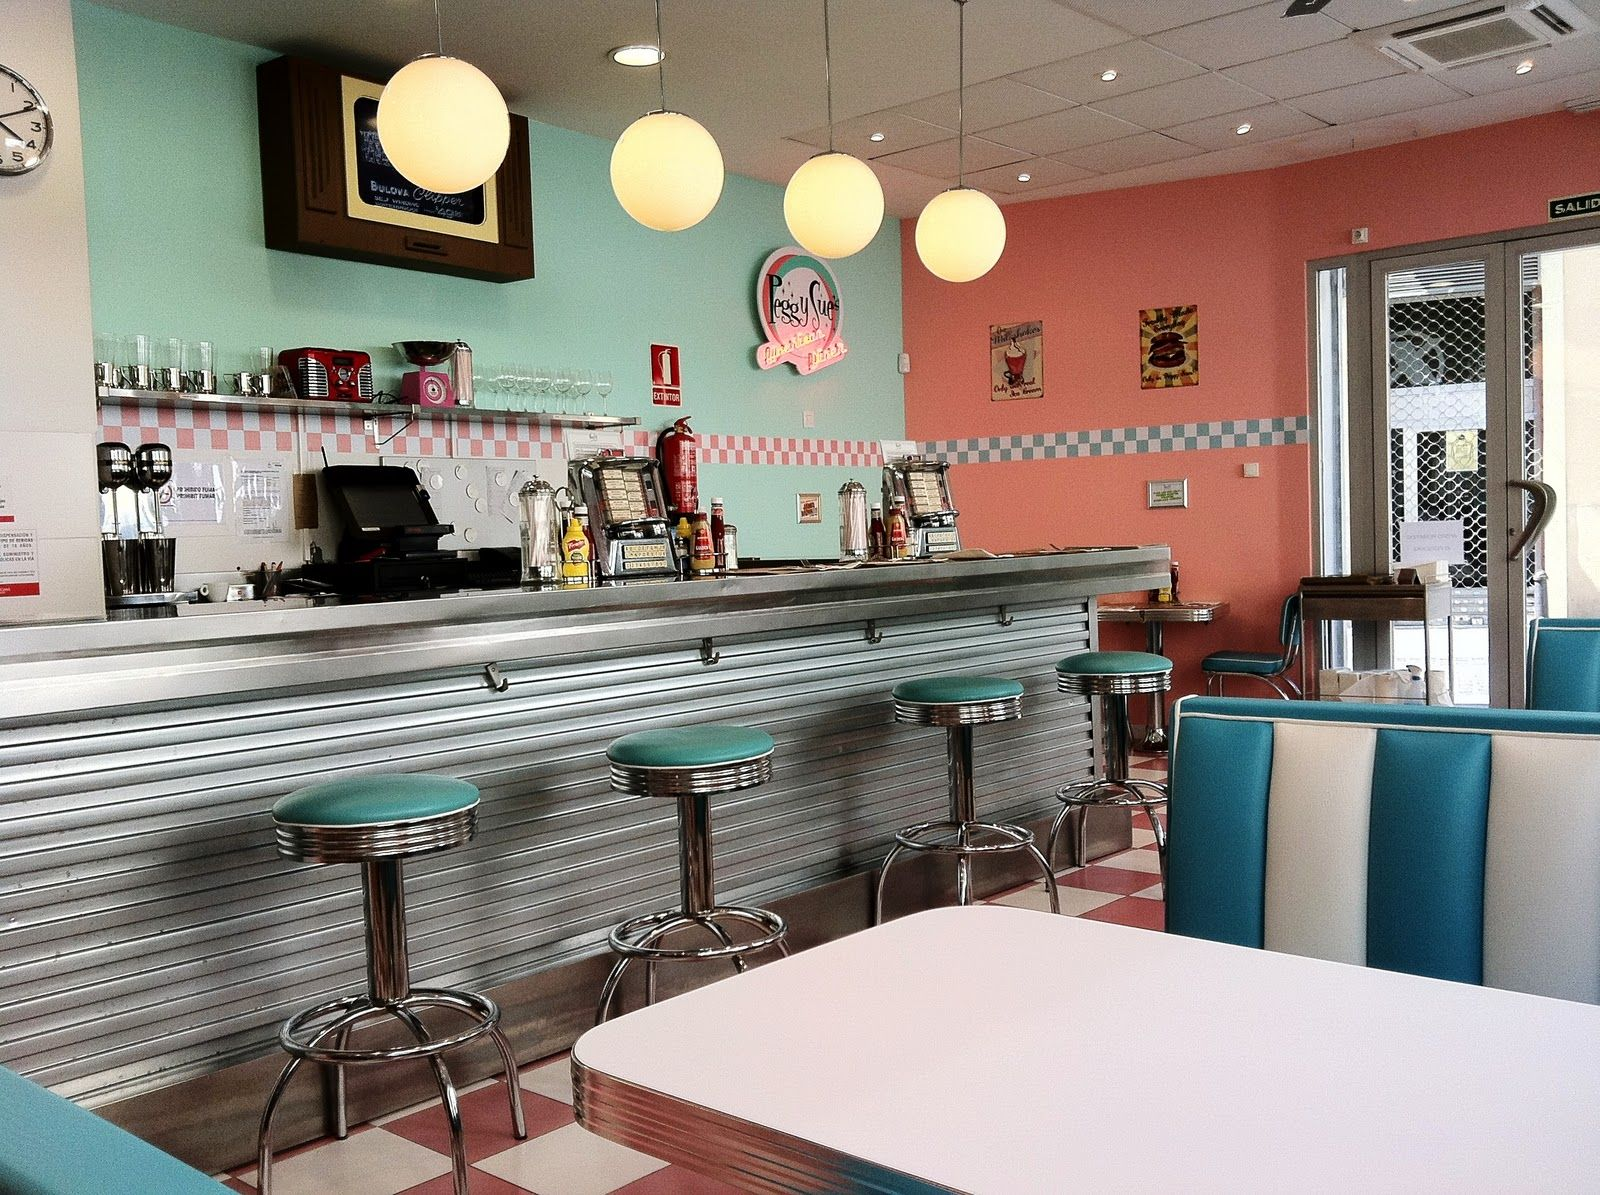 1950S Decor Entrancing 1950S Decor  1950's Style American Diner In Valencia Spain  L Inspiration Design